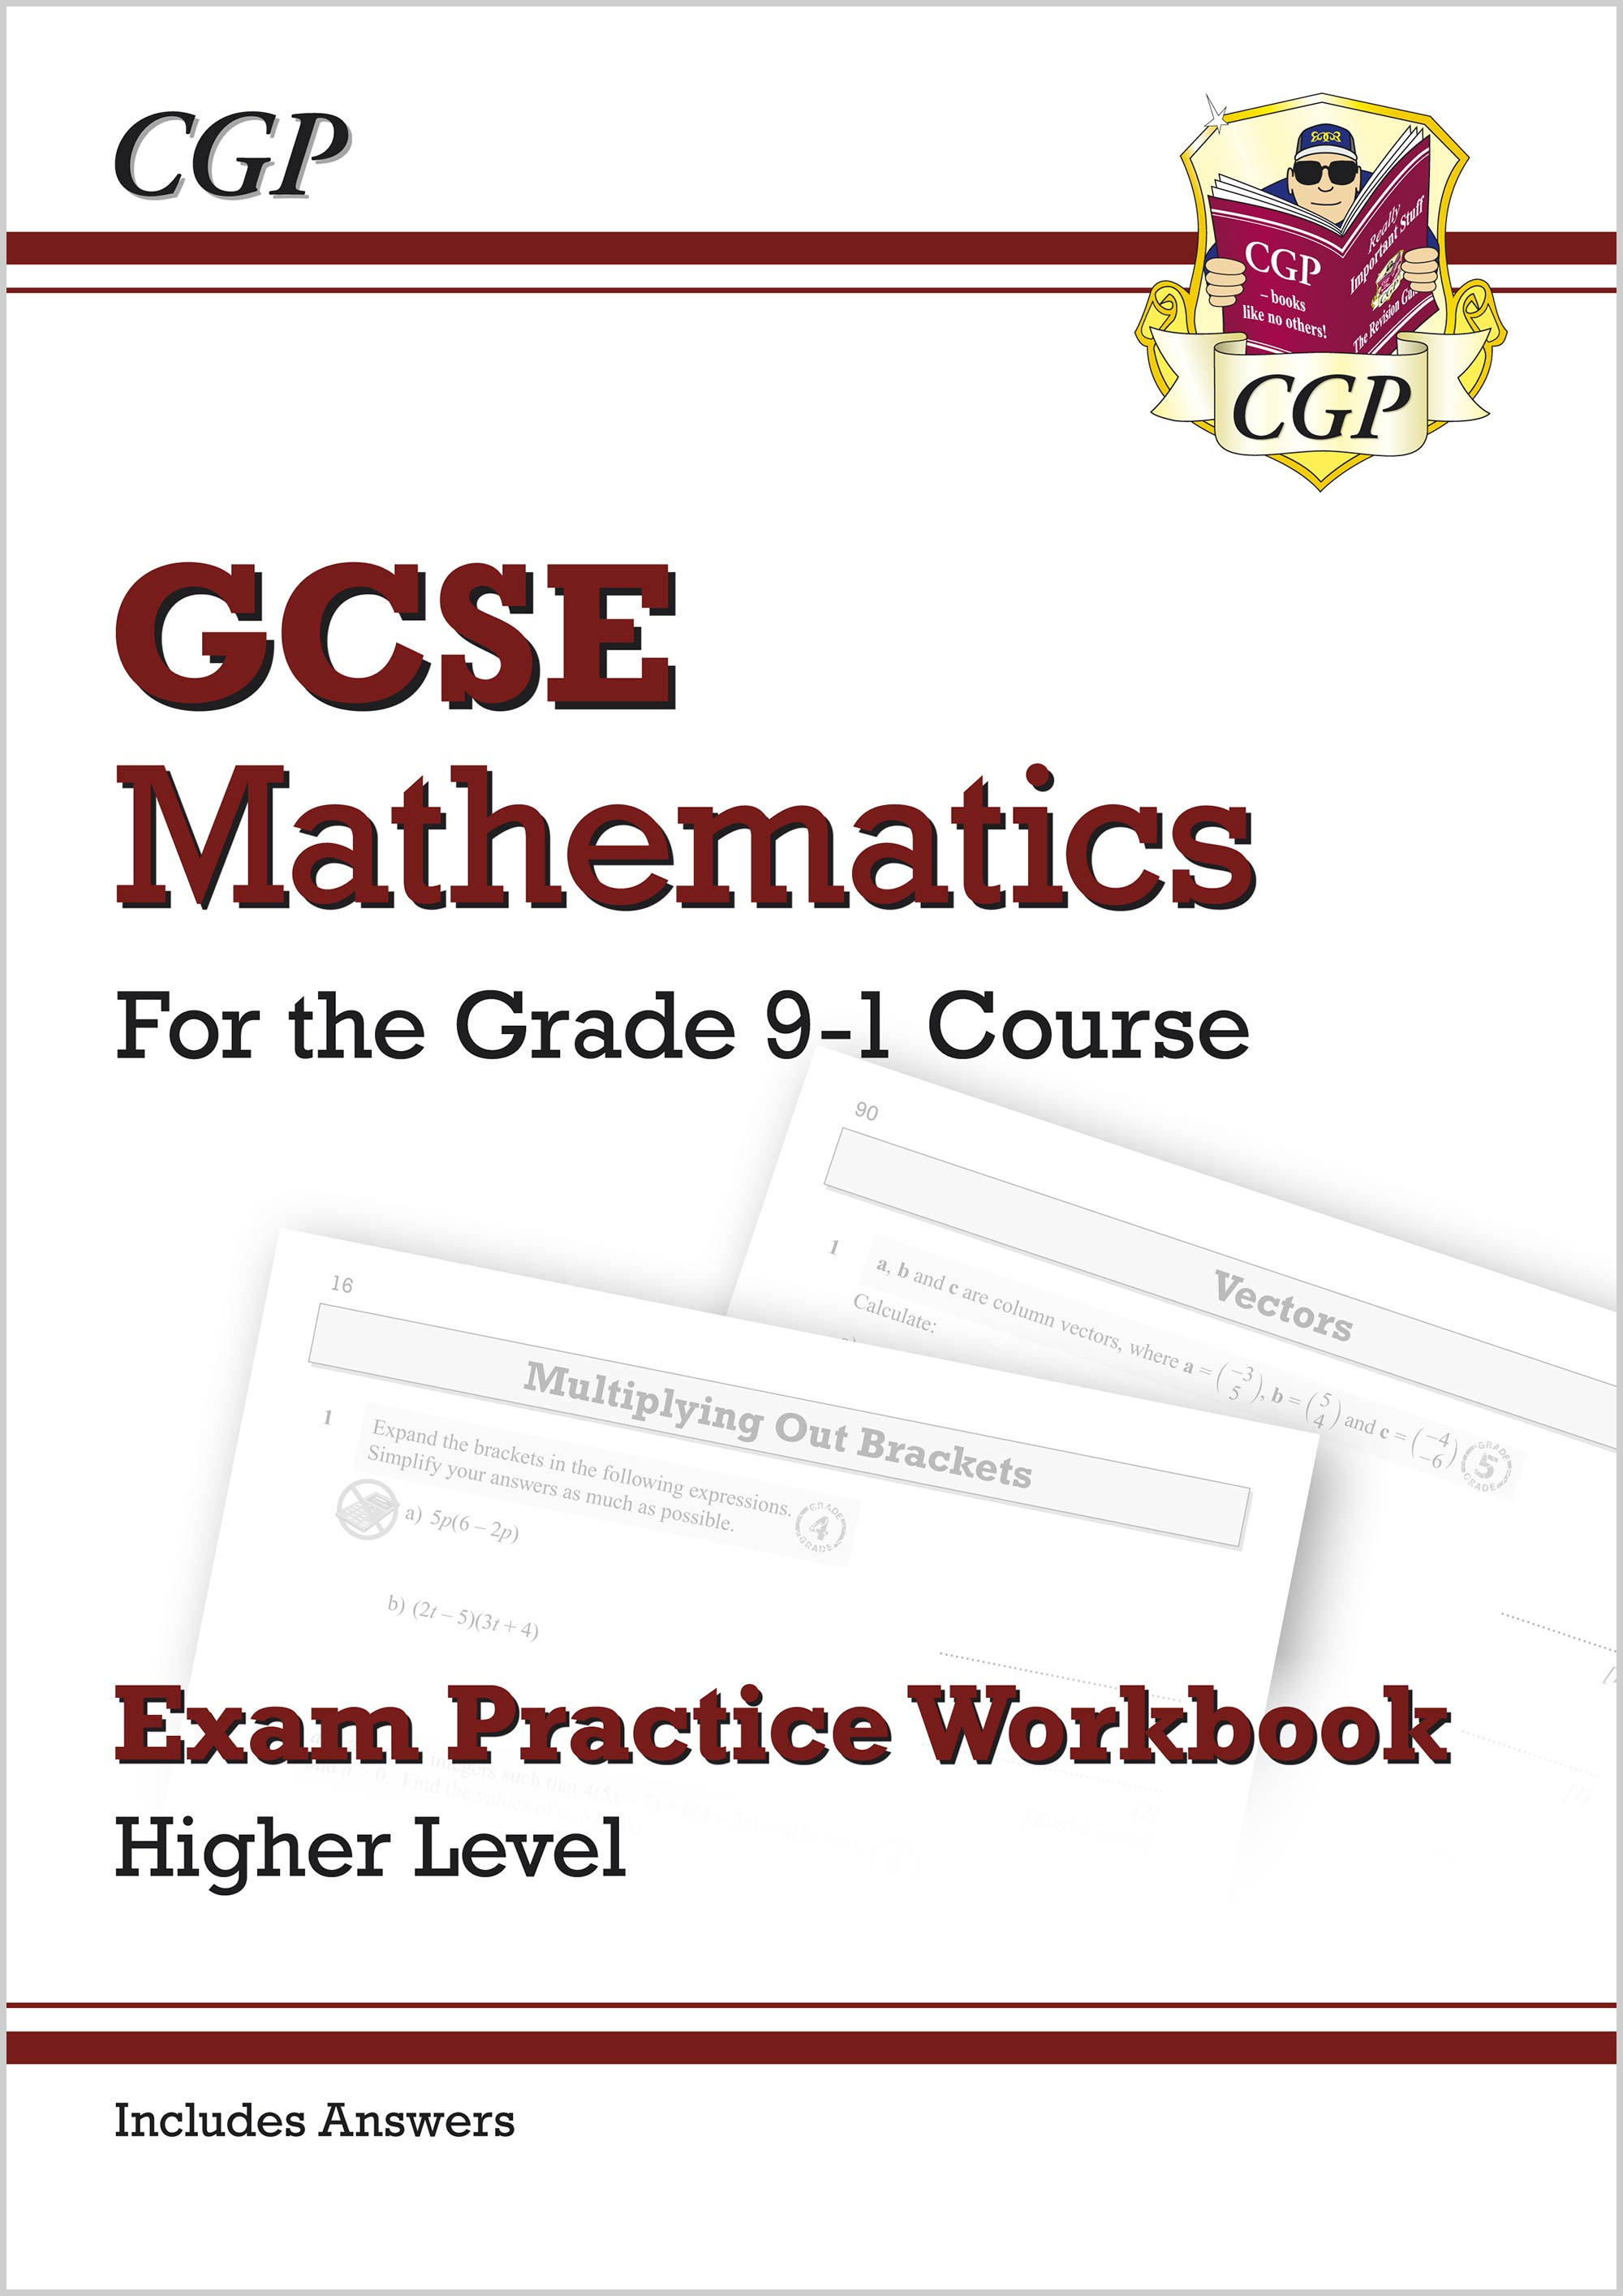 MHQ46 - GCSE Maths Exam Practice Workbook: Higher - for the Grade 9-1 Course (includes Answers)